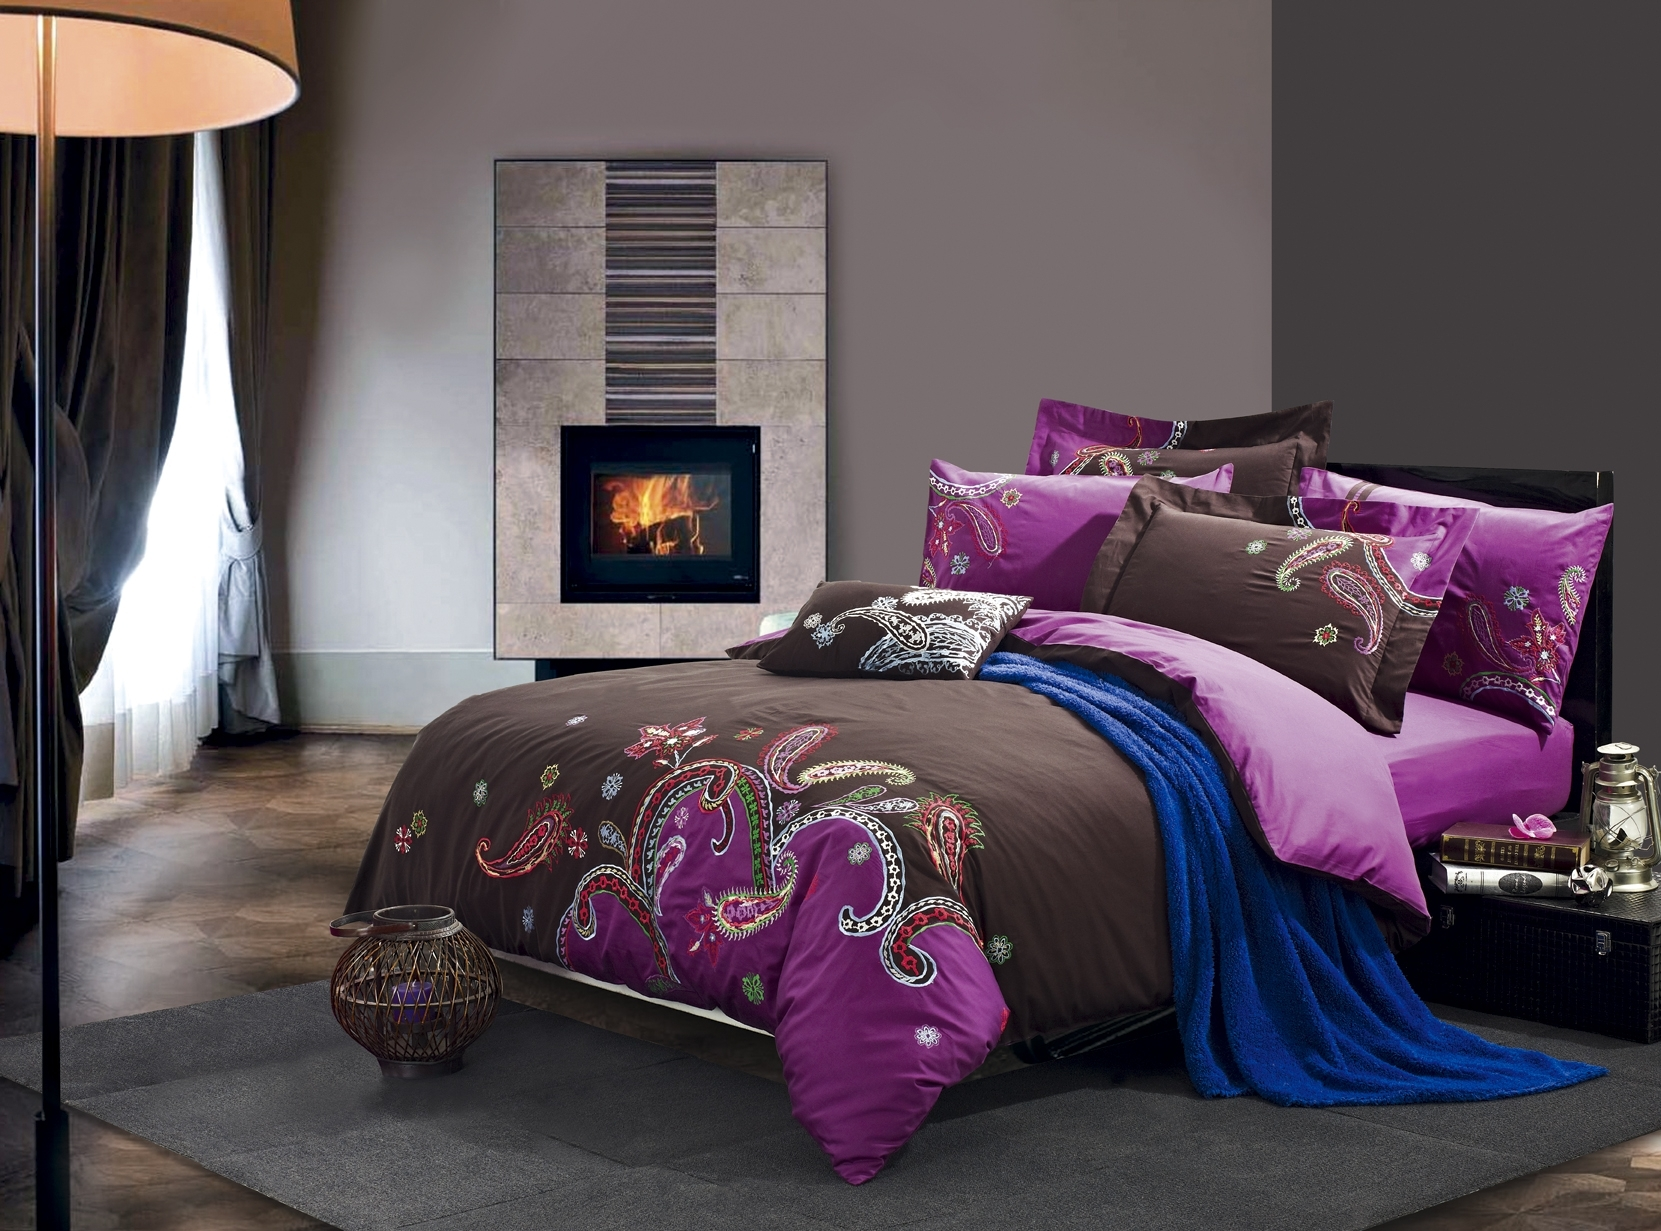 Brown and purple bedroom brown and purple bedroom brown and purple bedroom ideas brown and - Breathtaking images of purple and brown bedroom decorating design ideas ...